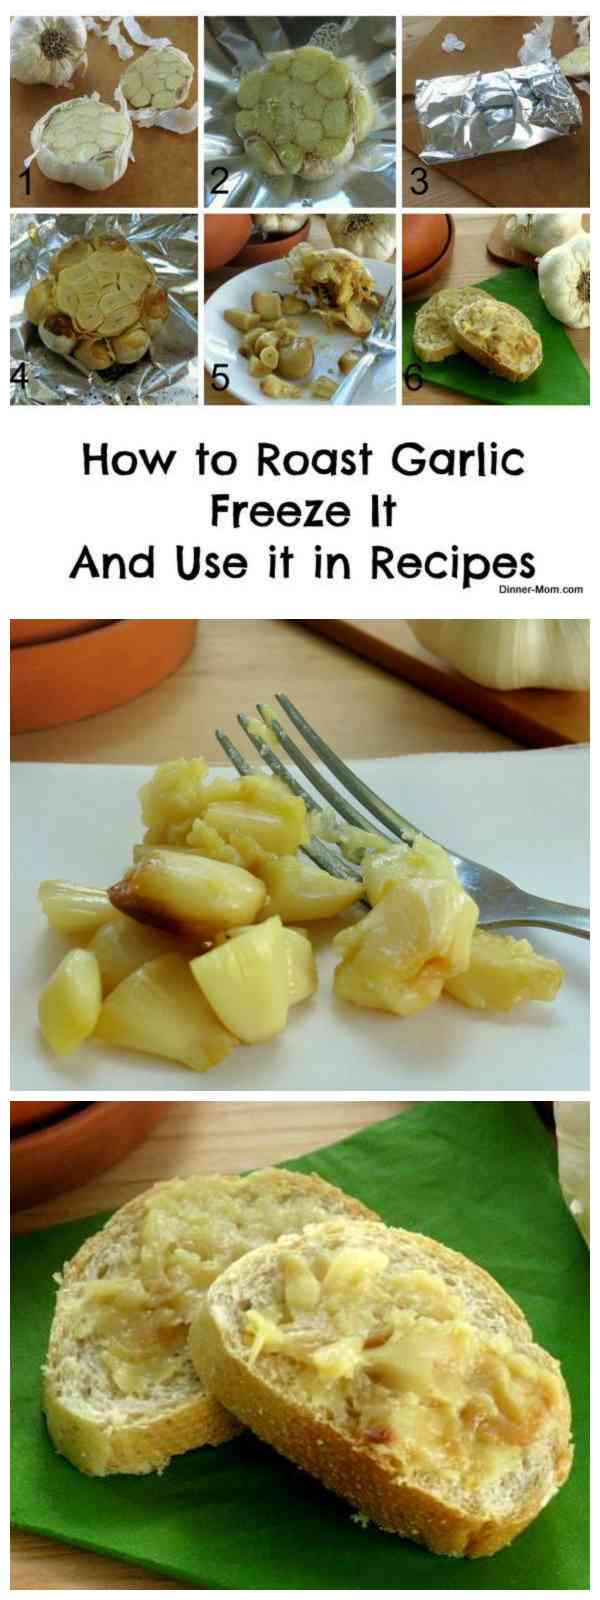 How to Roast Garlic Cloves, Freeze and Use in Recipes